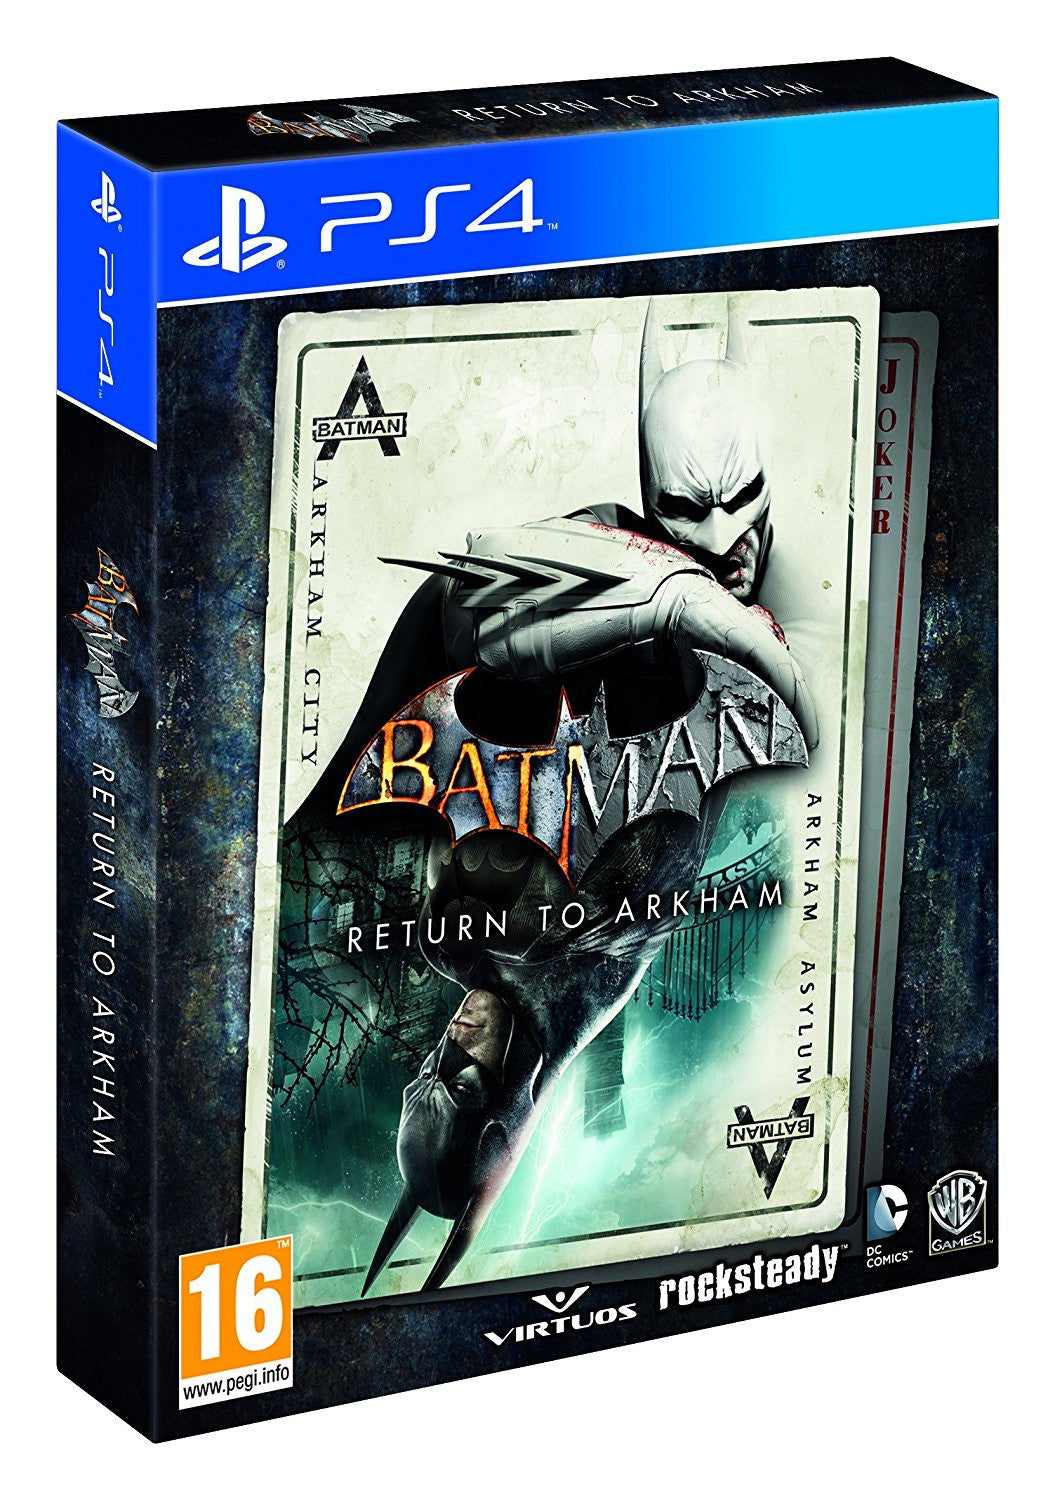 Batman Return To Arkham PS4 - Video Games by Warner Bros. Interactive Entertainment The Chelsea Gamer